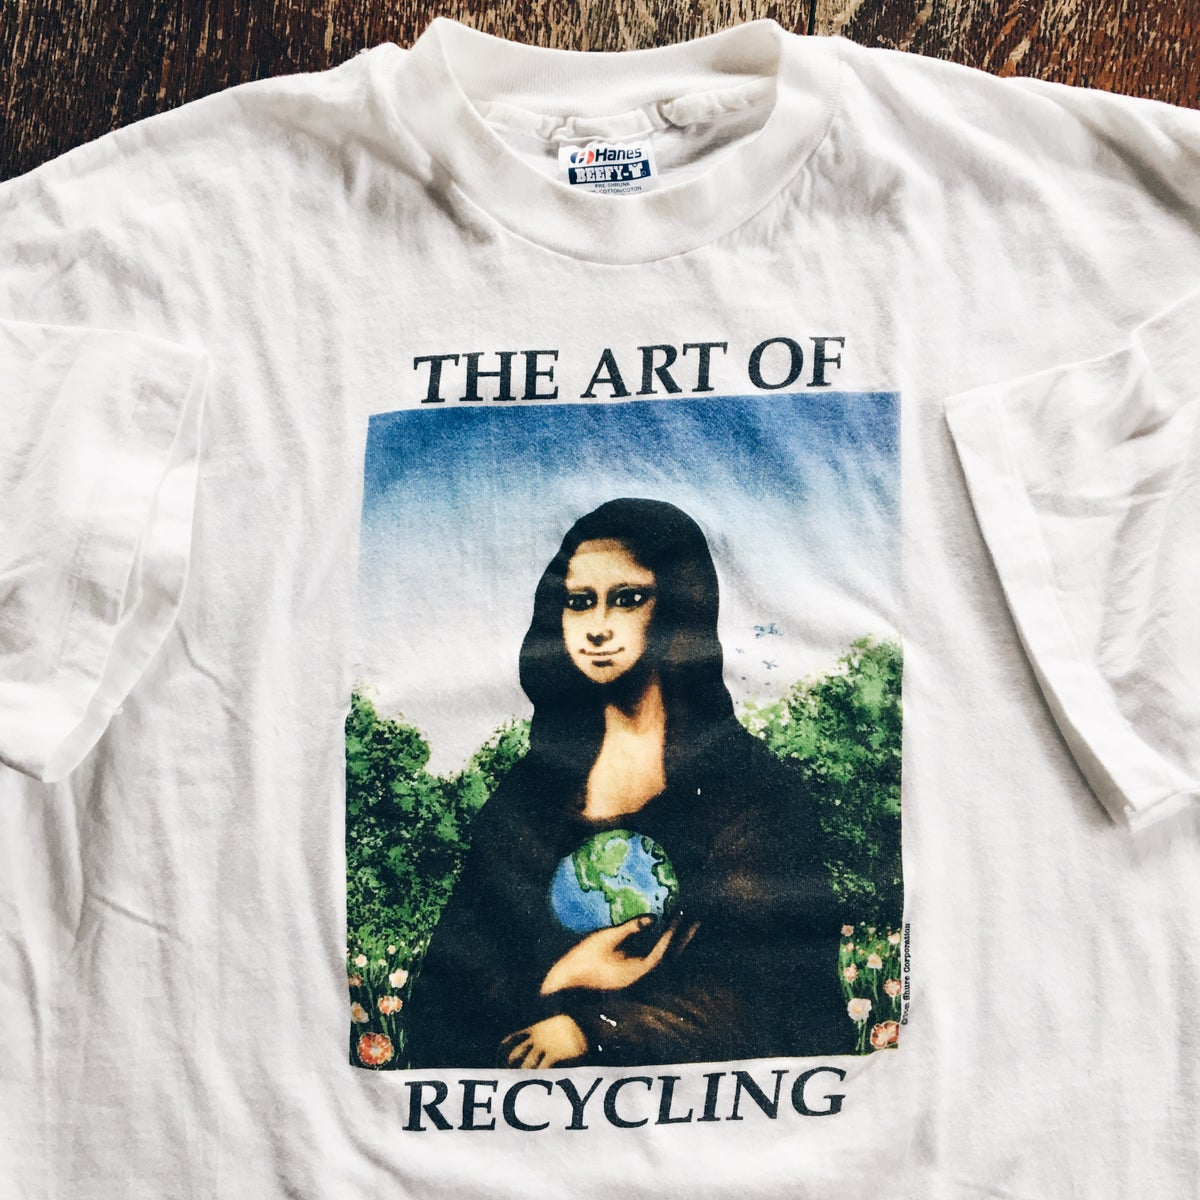 Image of Original 90's The Art Of Recycling Tee.